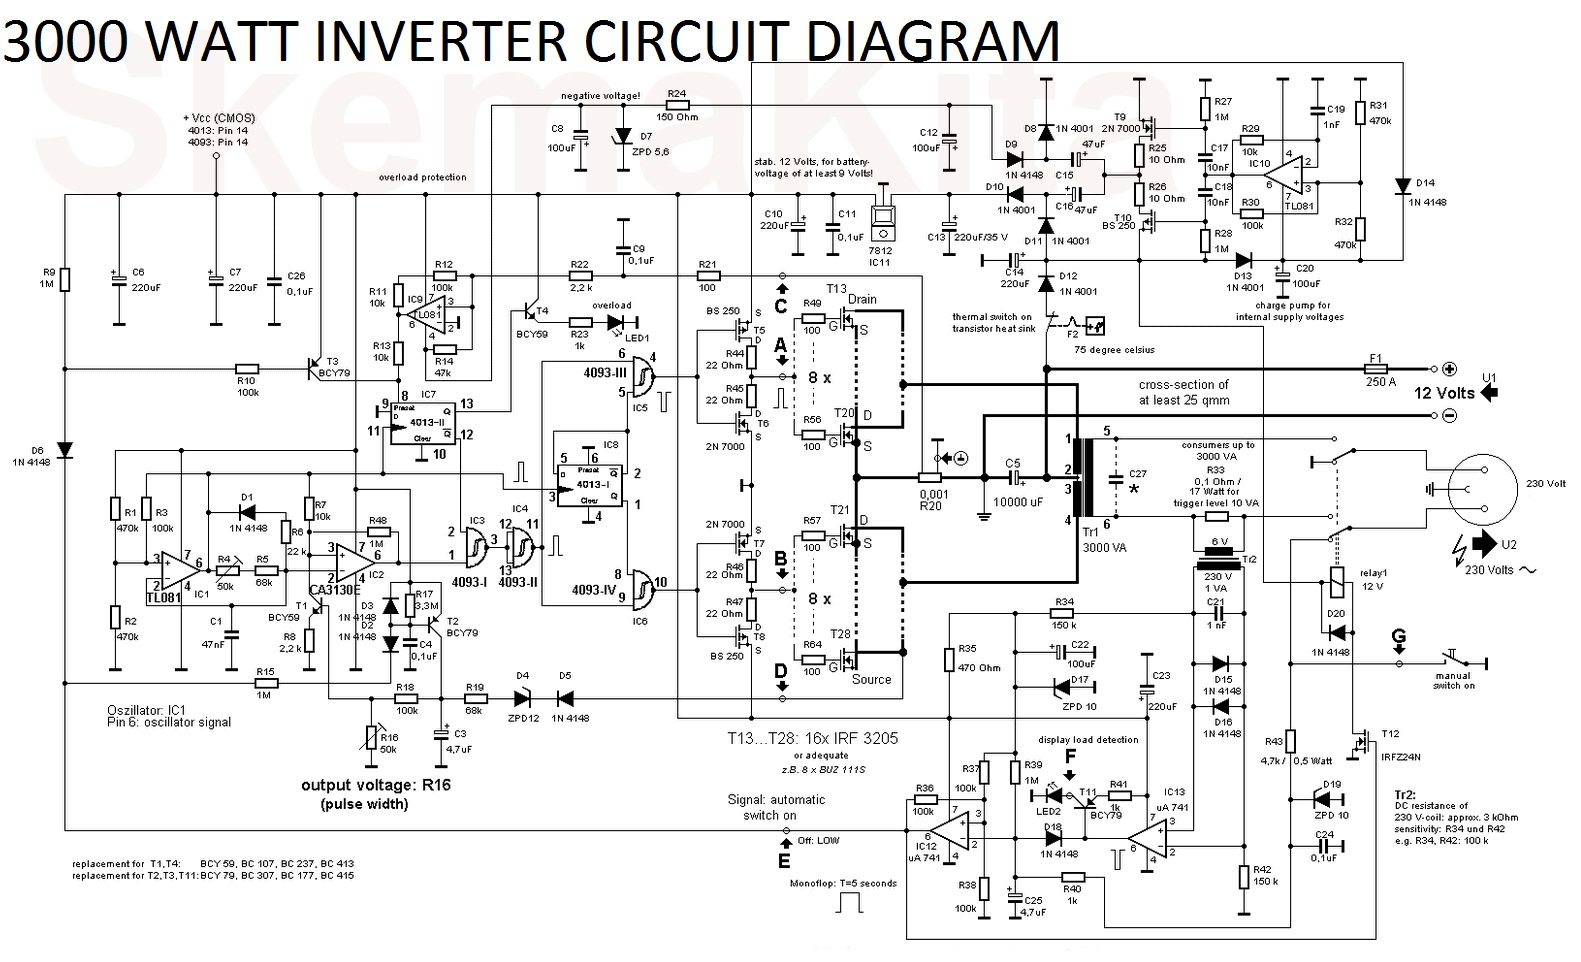 3000 watt inverter circuit diagram electronic circuit free inverter circuit diagram 1000w free inverter circuit diagram 1000w